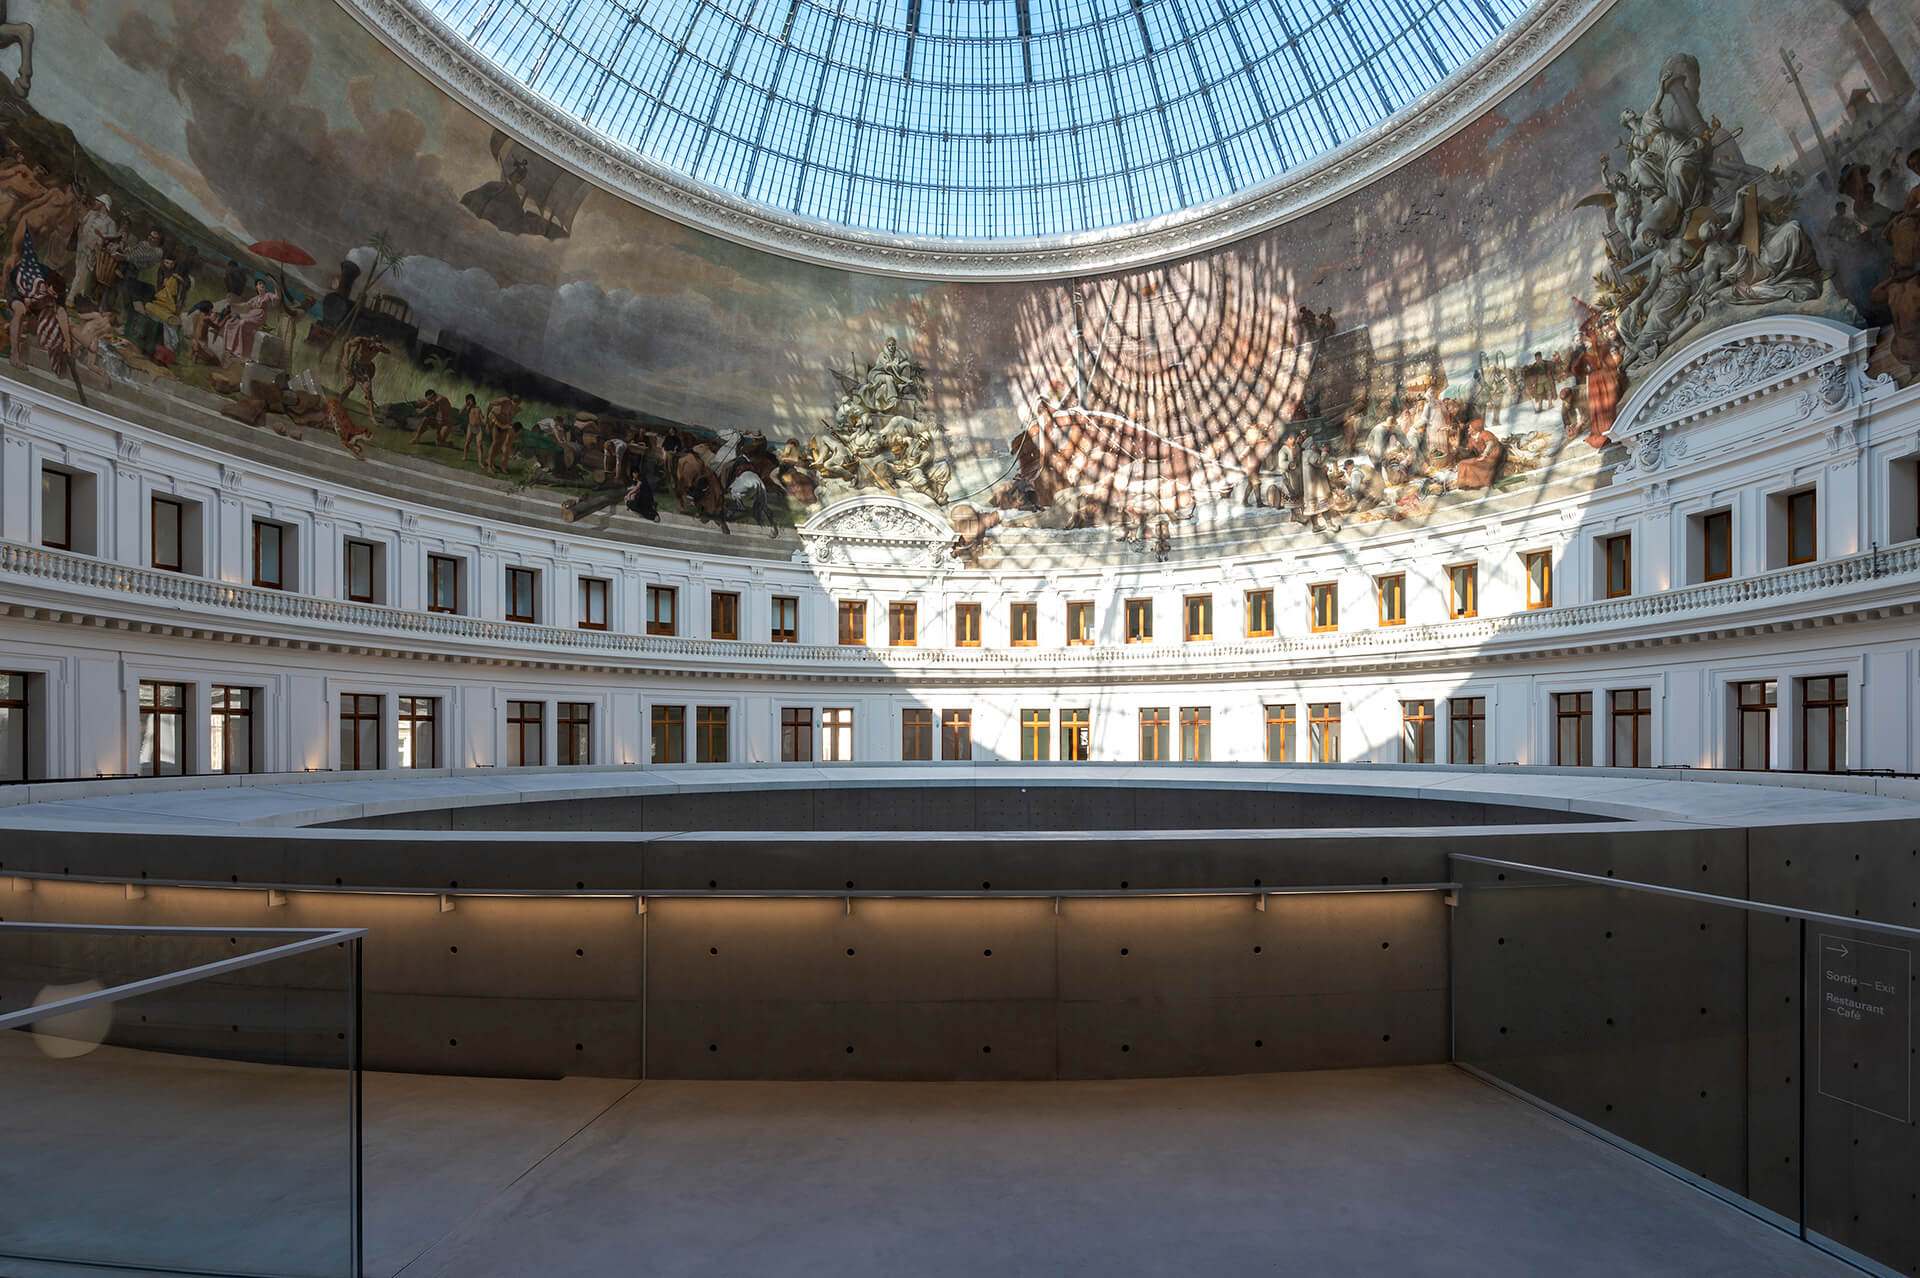 The top floor of the exhibition space and the disc shaped deck for viewing the cupola | Bourse De Commerce – Pinault Collection | Tadao Ando Architect & Associates, Niney and Marca Architects, and Agence Pierre-Antoine Gatier | STIRworld